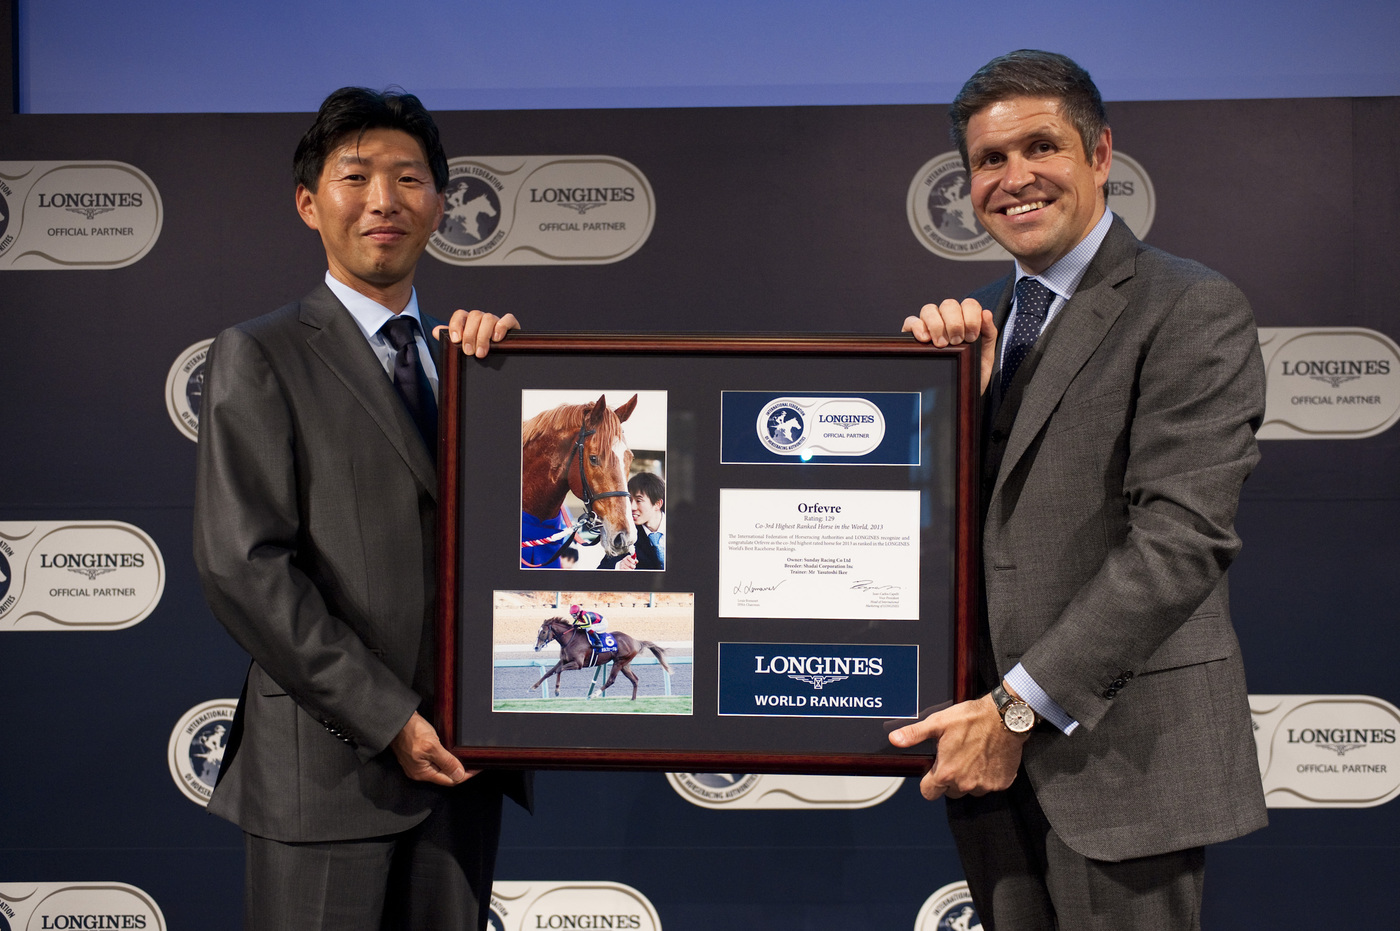 Longines Flat Racing Event: Longines and the International Federation of Horseracing Authorities (IFHA) honoured ORFEVRE as the co-third highest-rated horse in the world for 2013 4